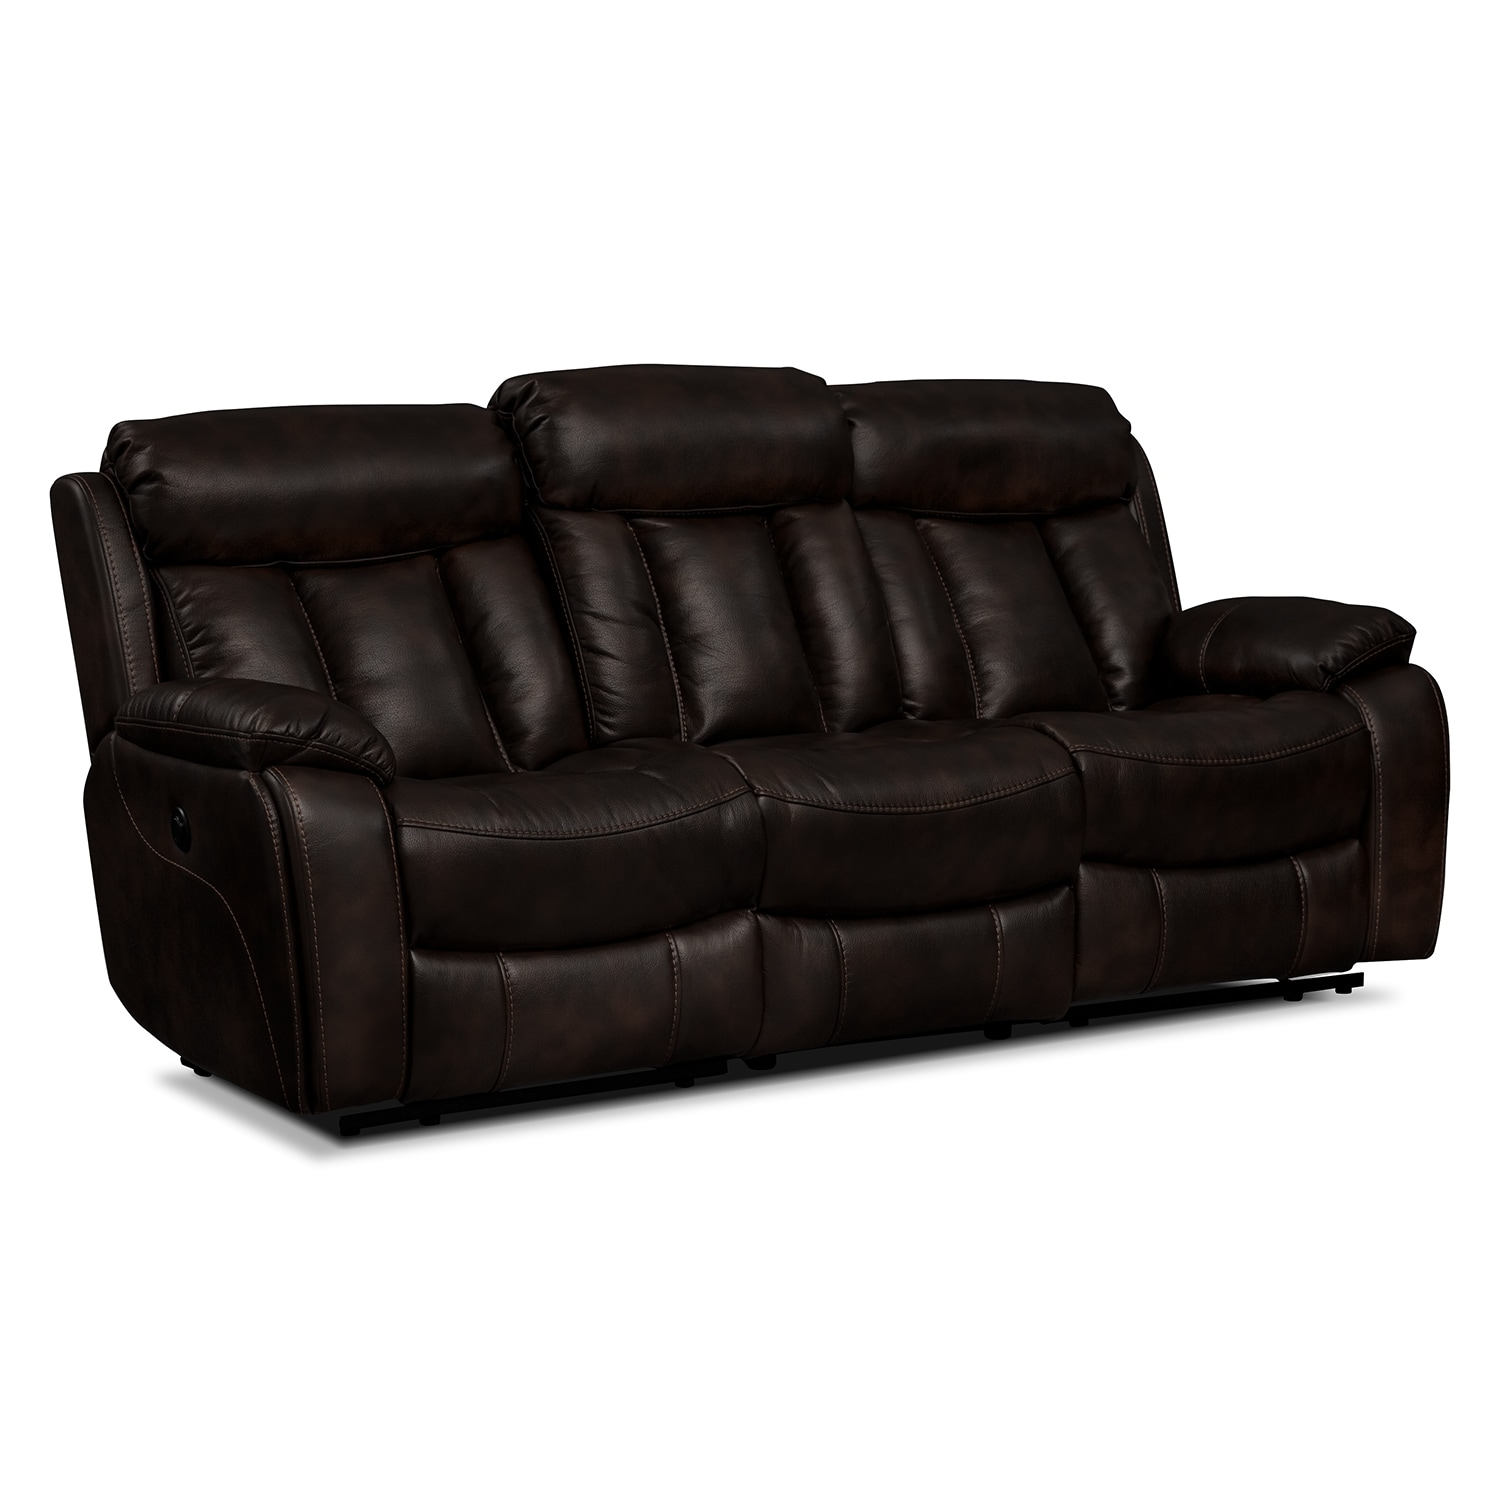 Diablo II Power Reclining Sofa